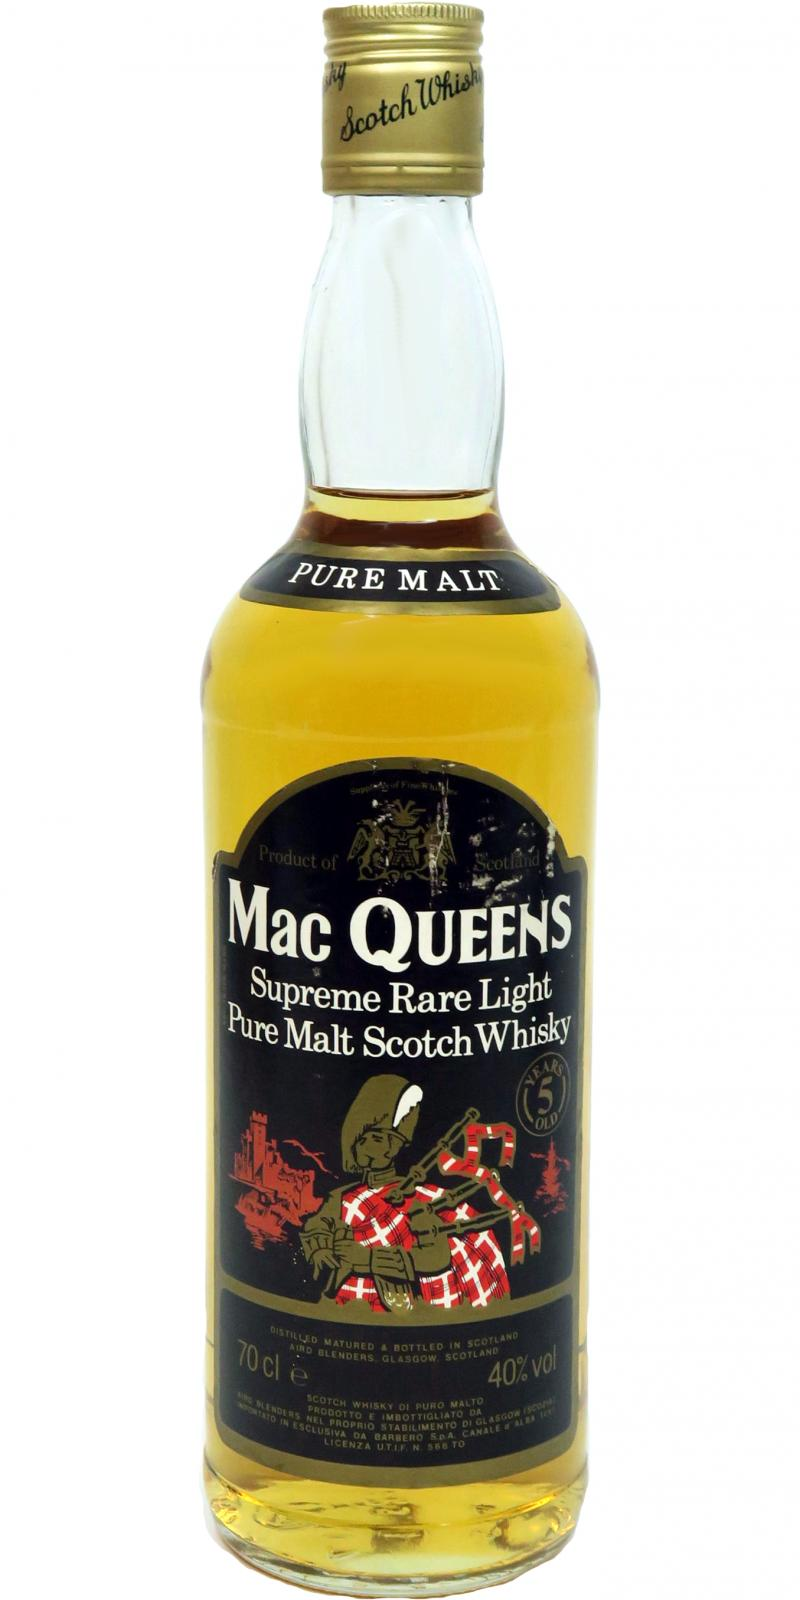 Mac Queens 05-year-old